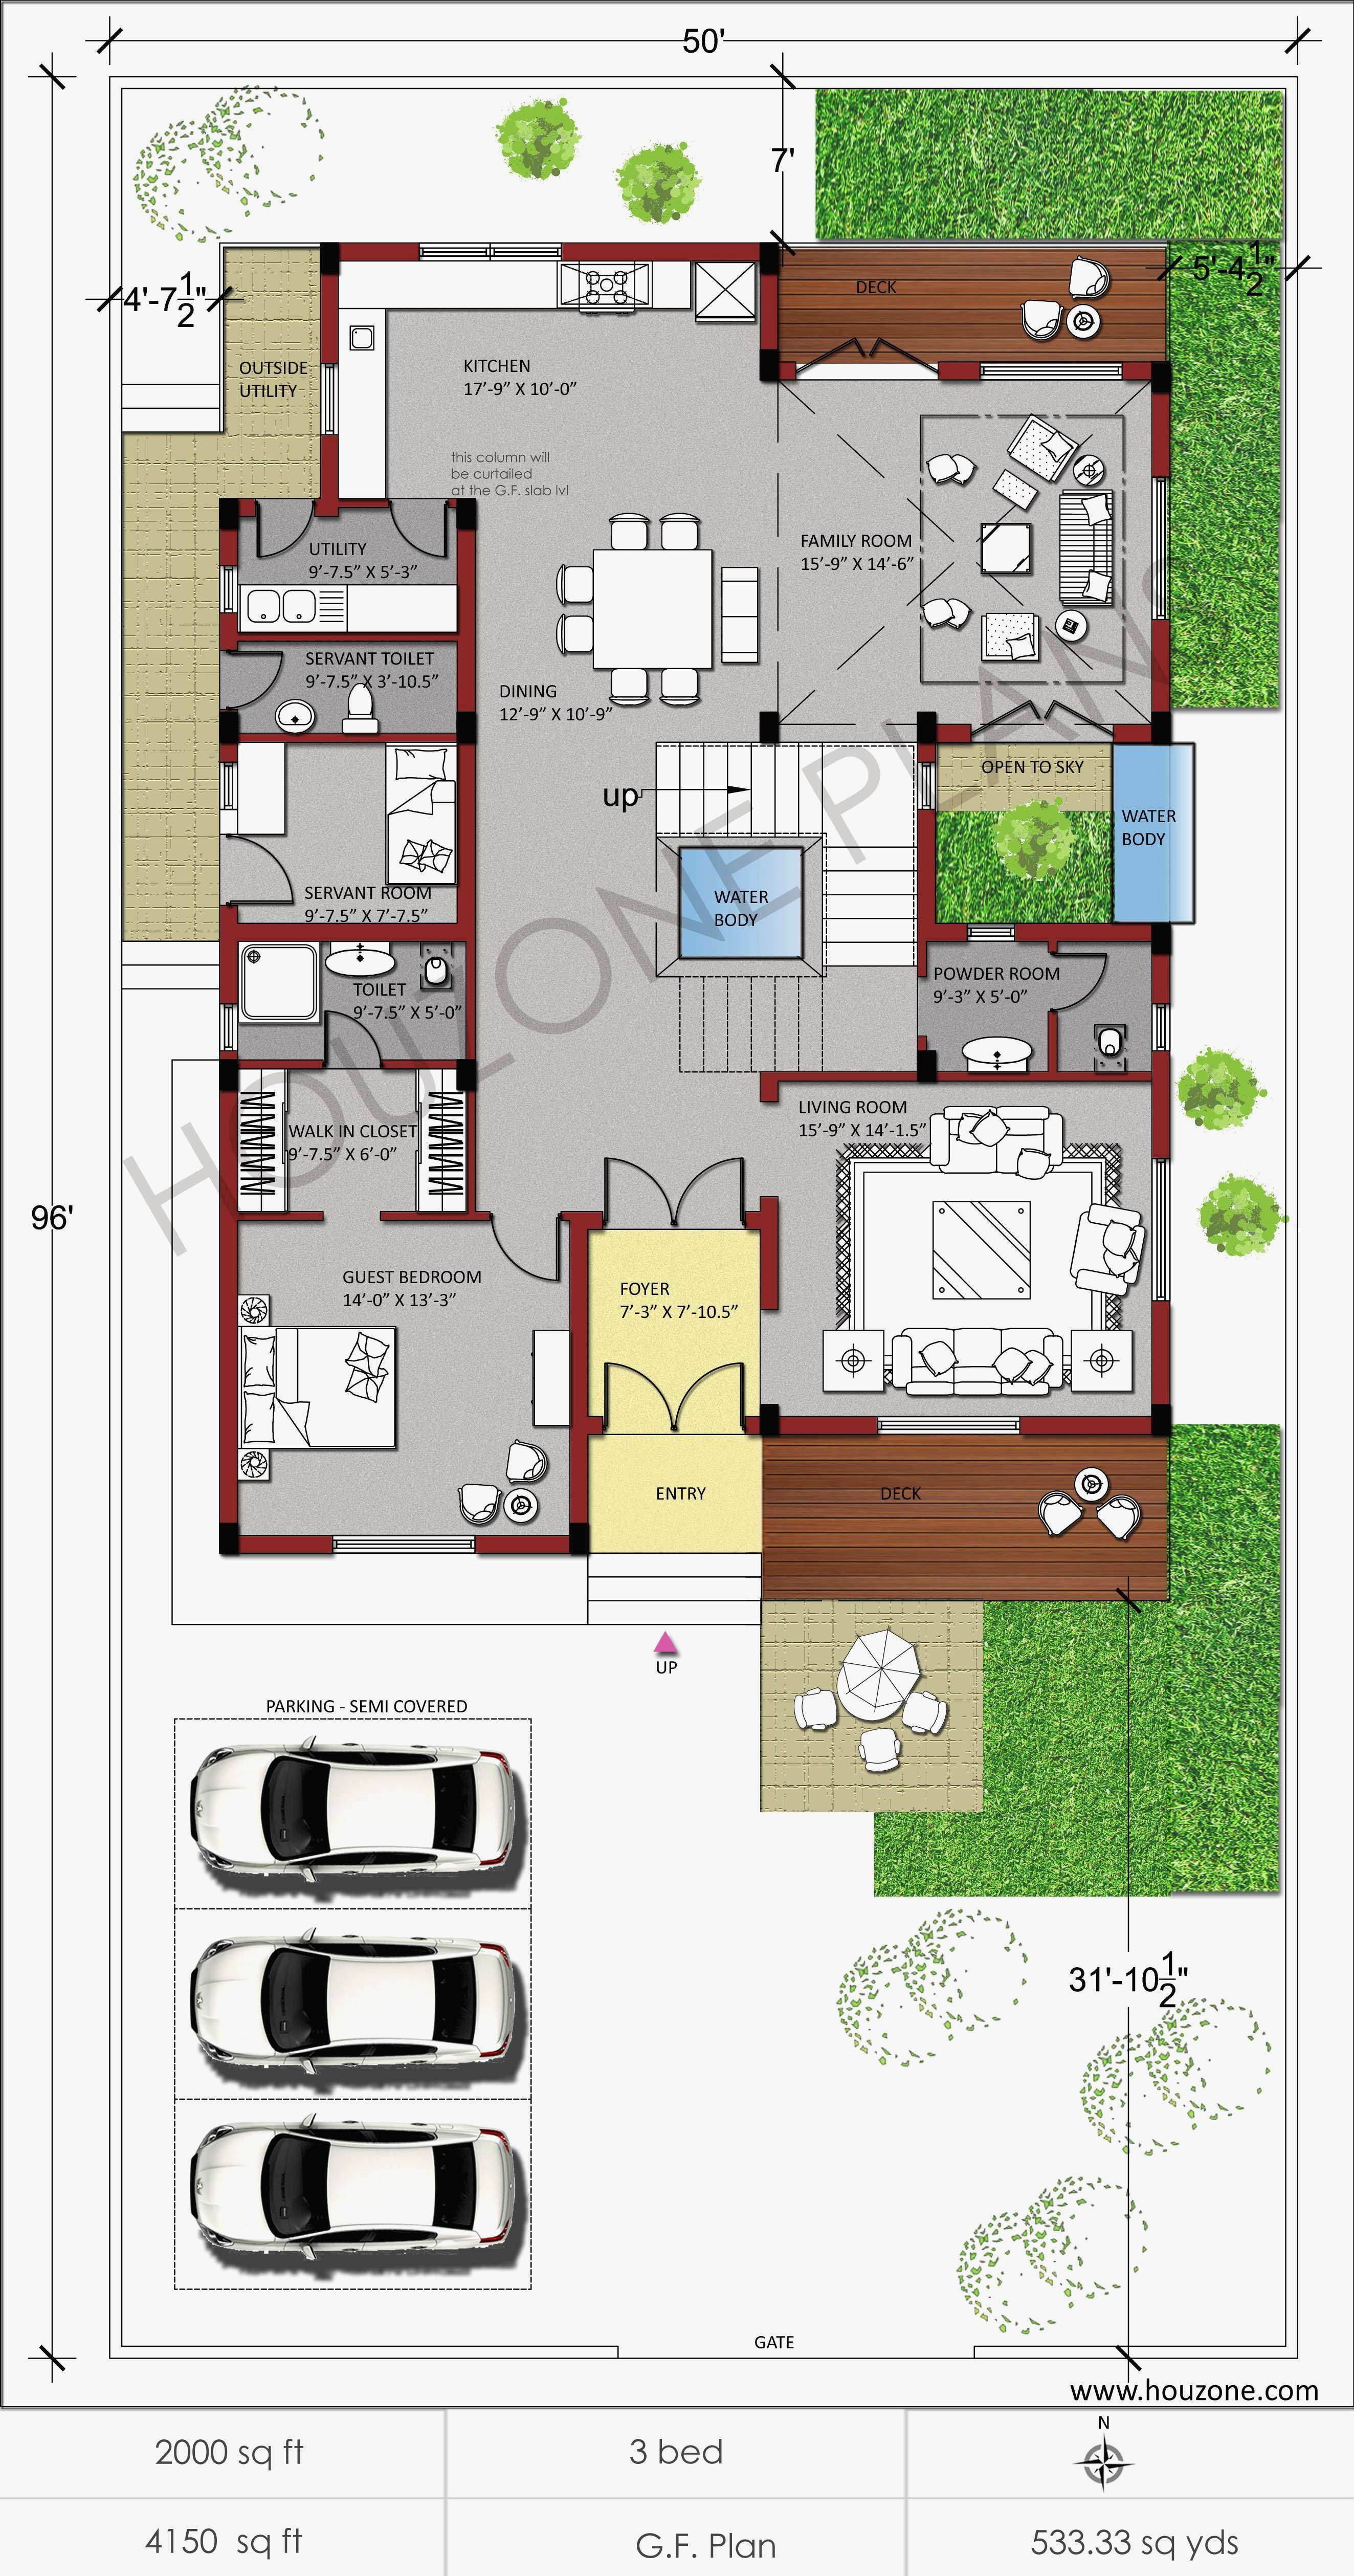 House Plans for Duplexes Three Bedroom Inspirational Duplex House Plans Indian Style Lovely Duplex House Plans